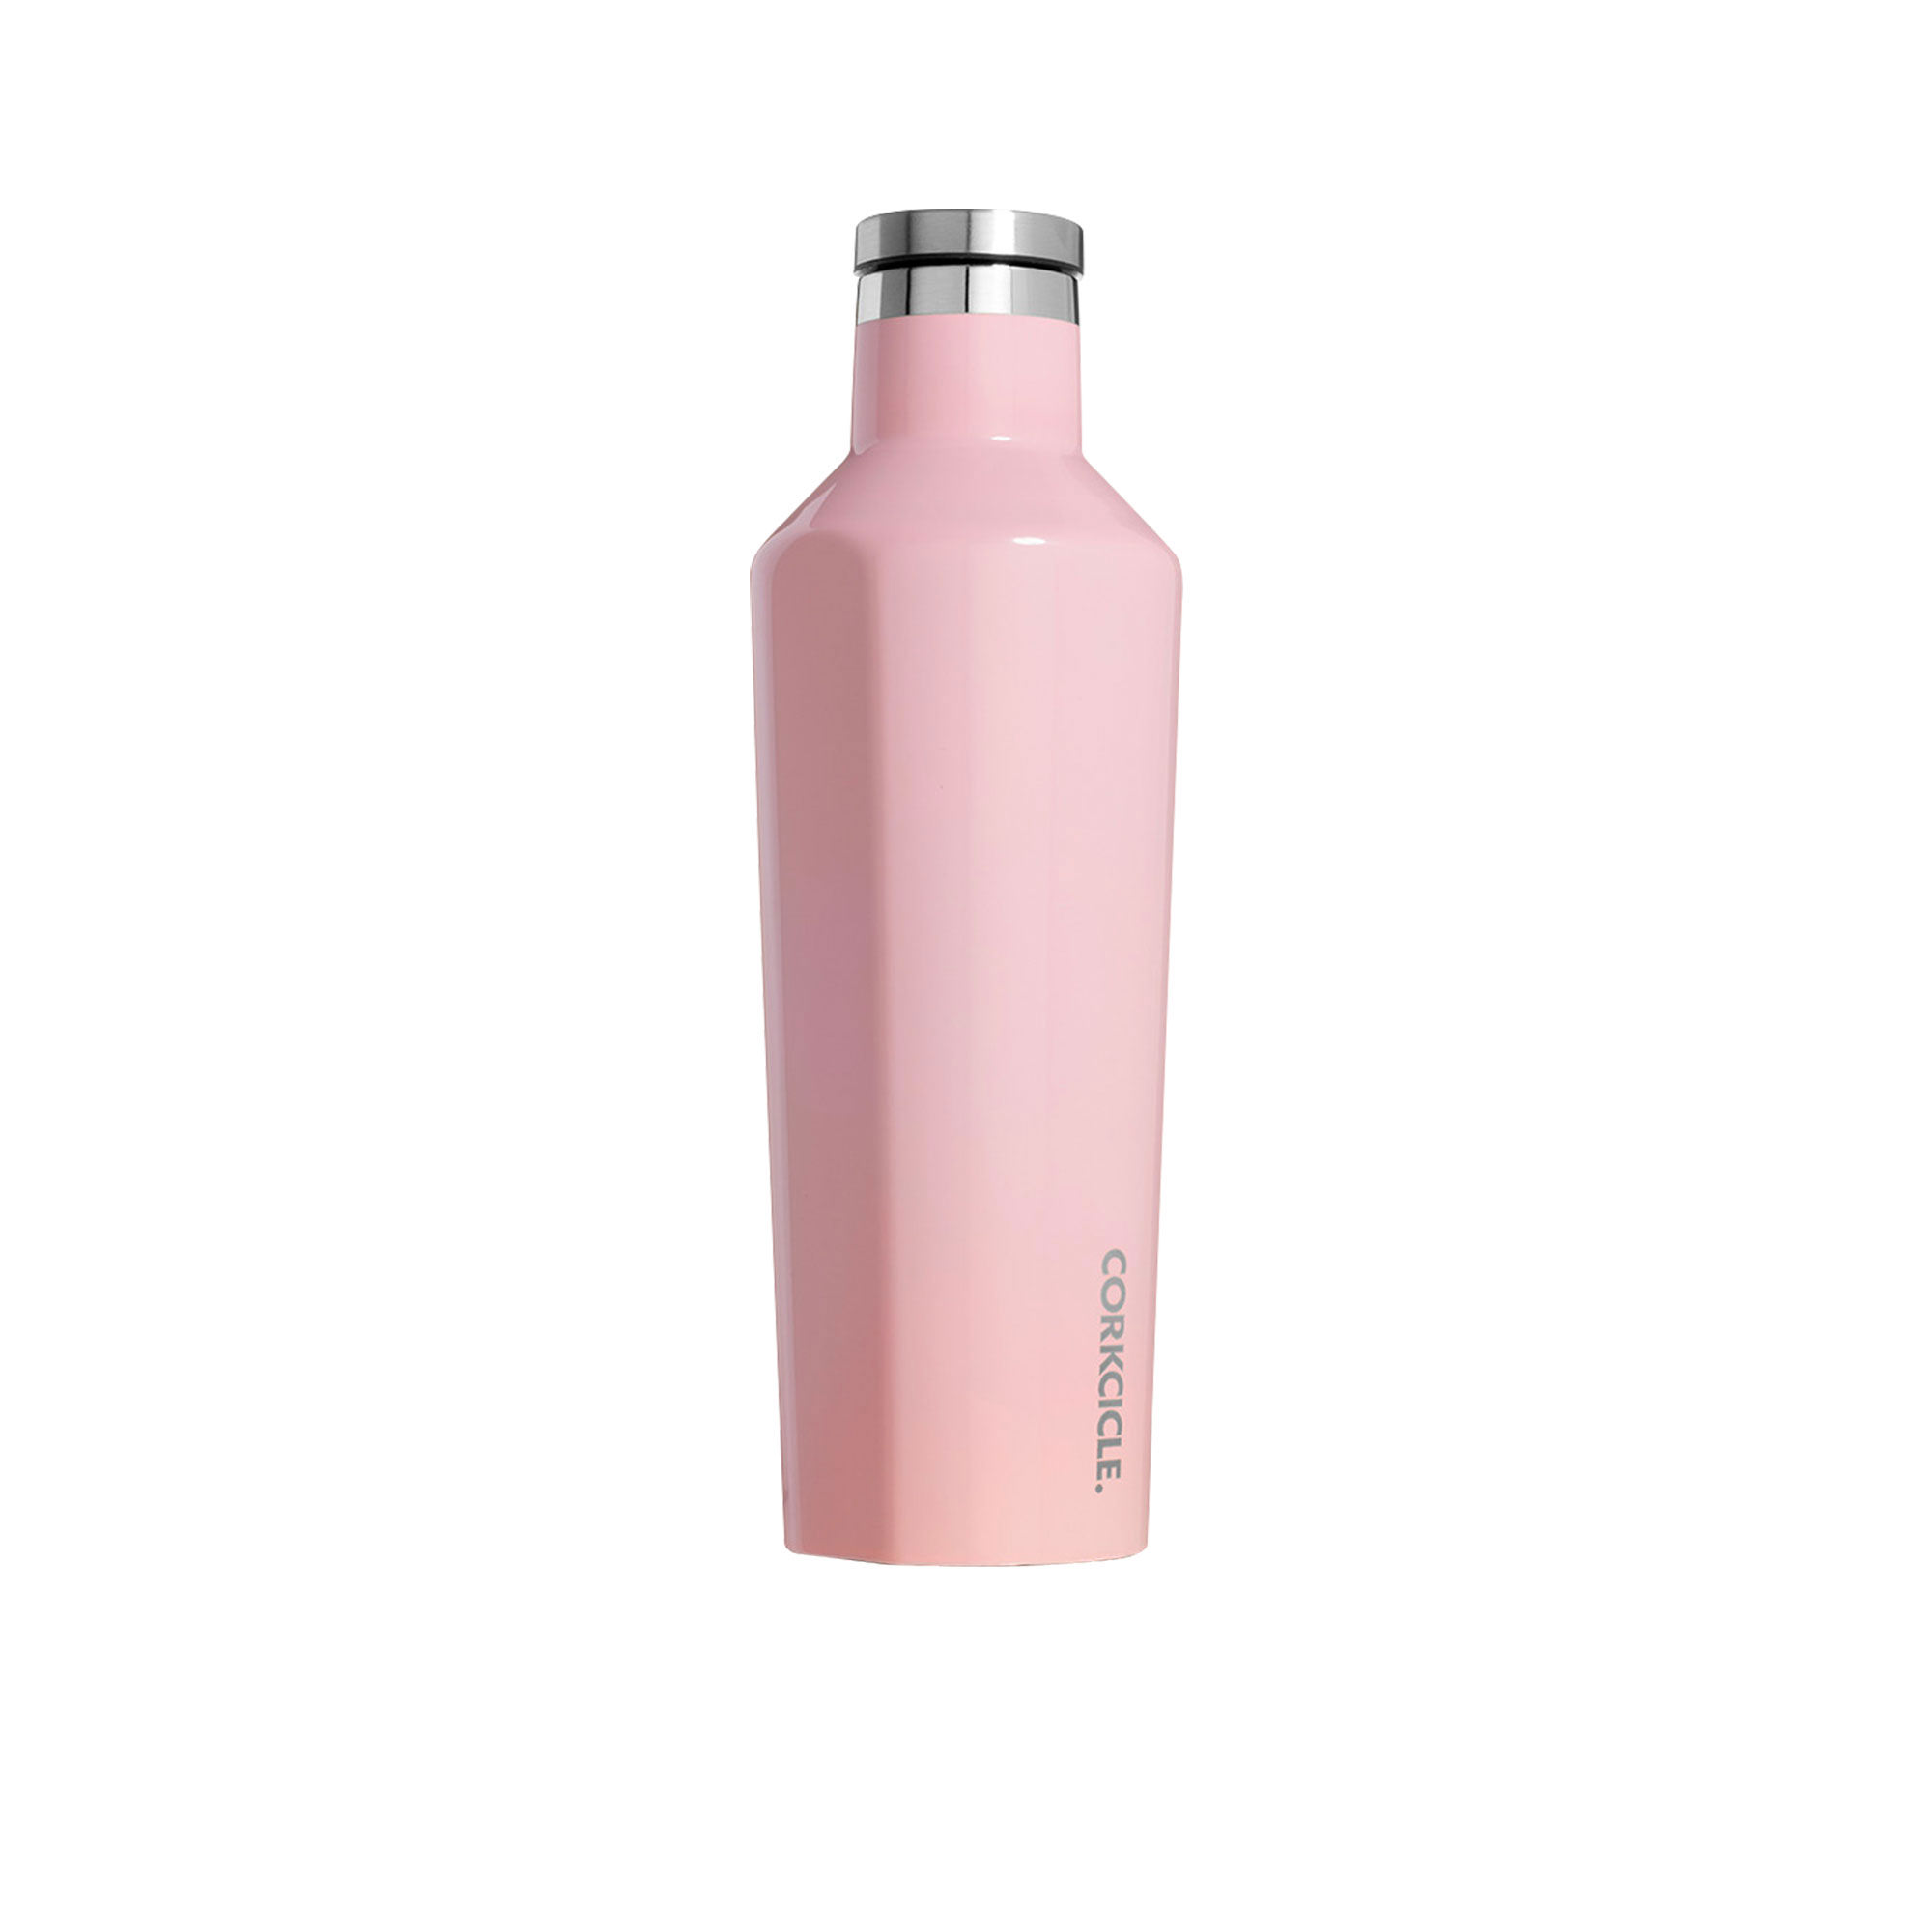 Corkcicle Classic Canteen Insulated Drink Bottle 475ml Rose Quartz